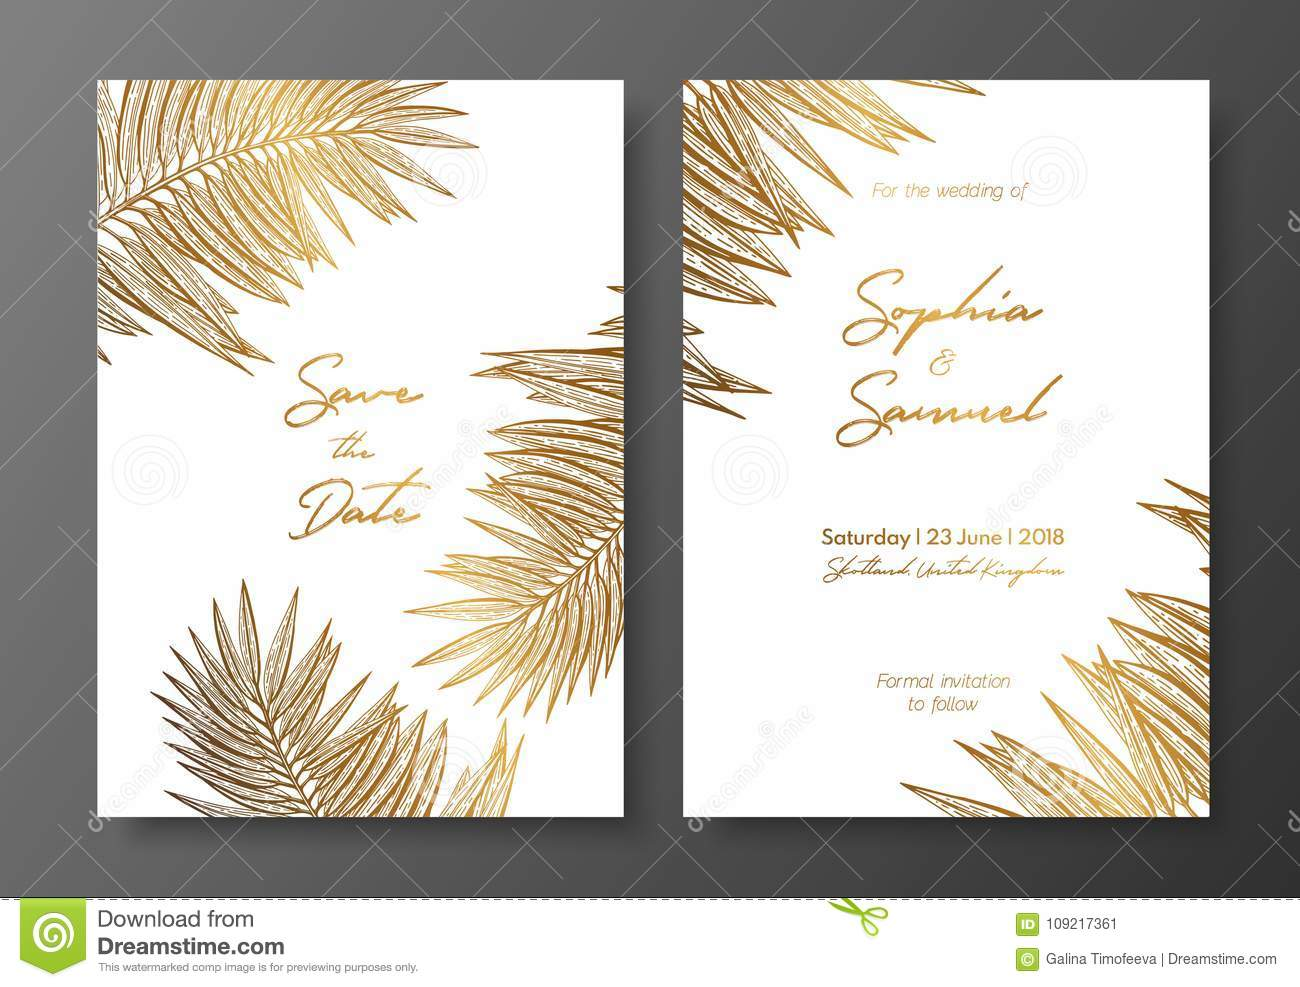 Gold wedding invitation with tropical leaves vector elements for download gold wedding invitation with tropical leaves vector elements for design template gold tropical stopboris Image collections